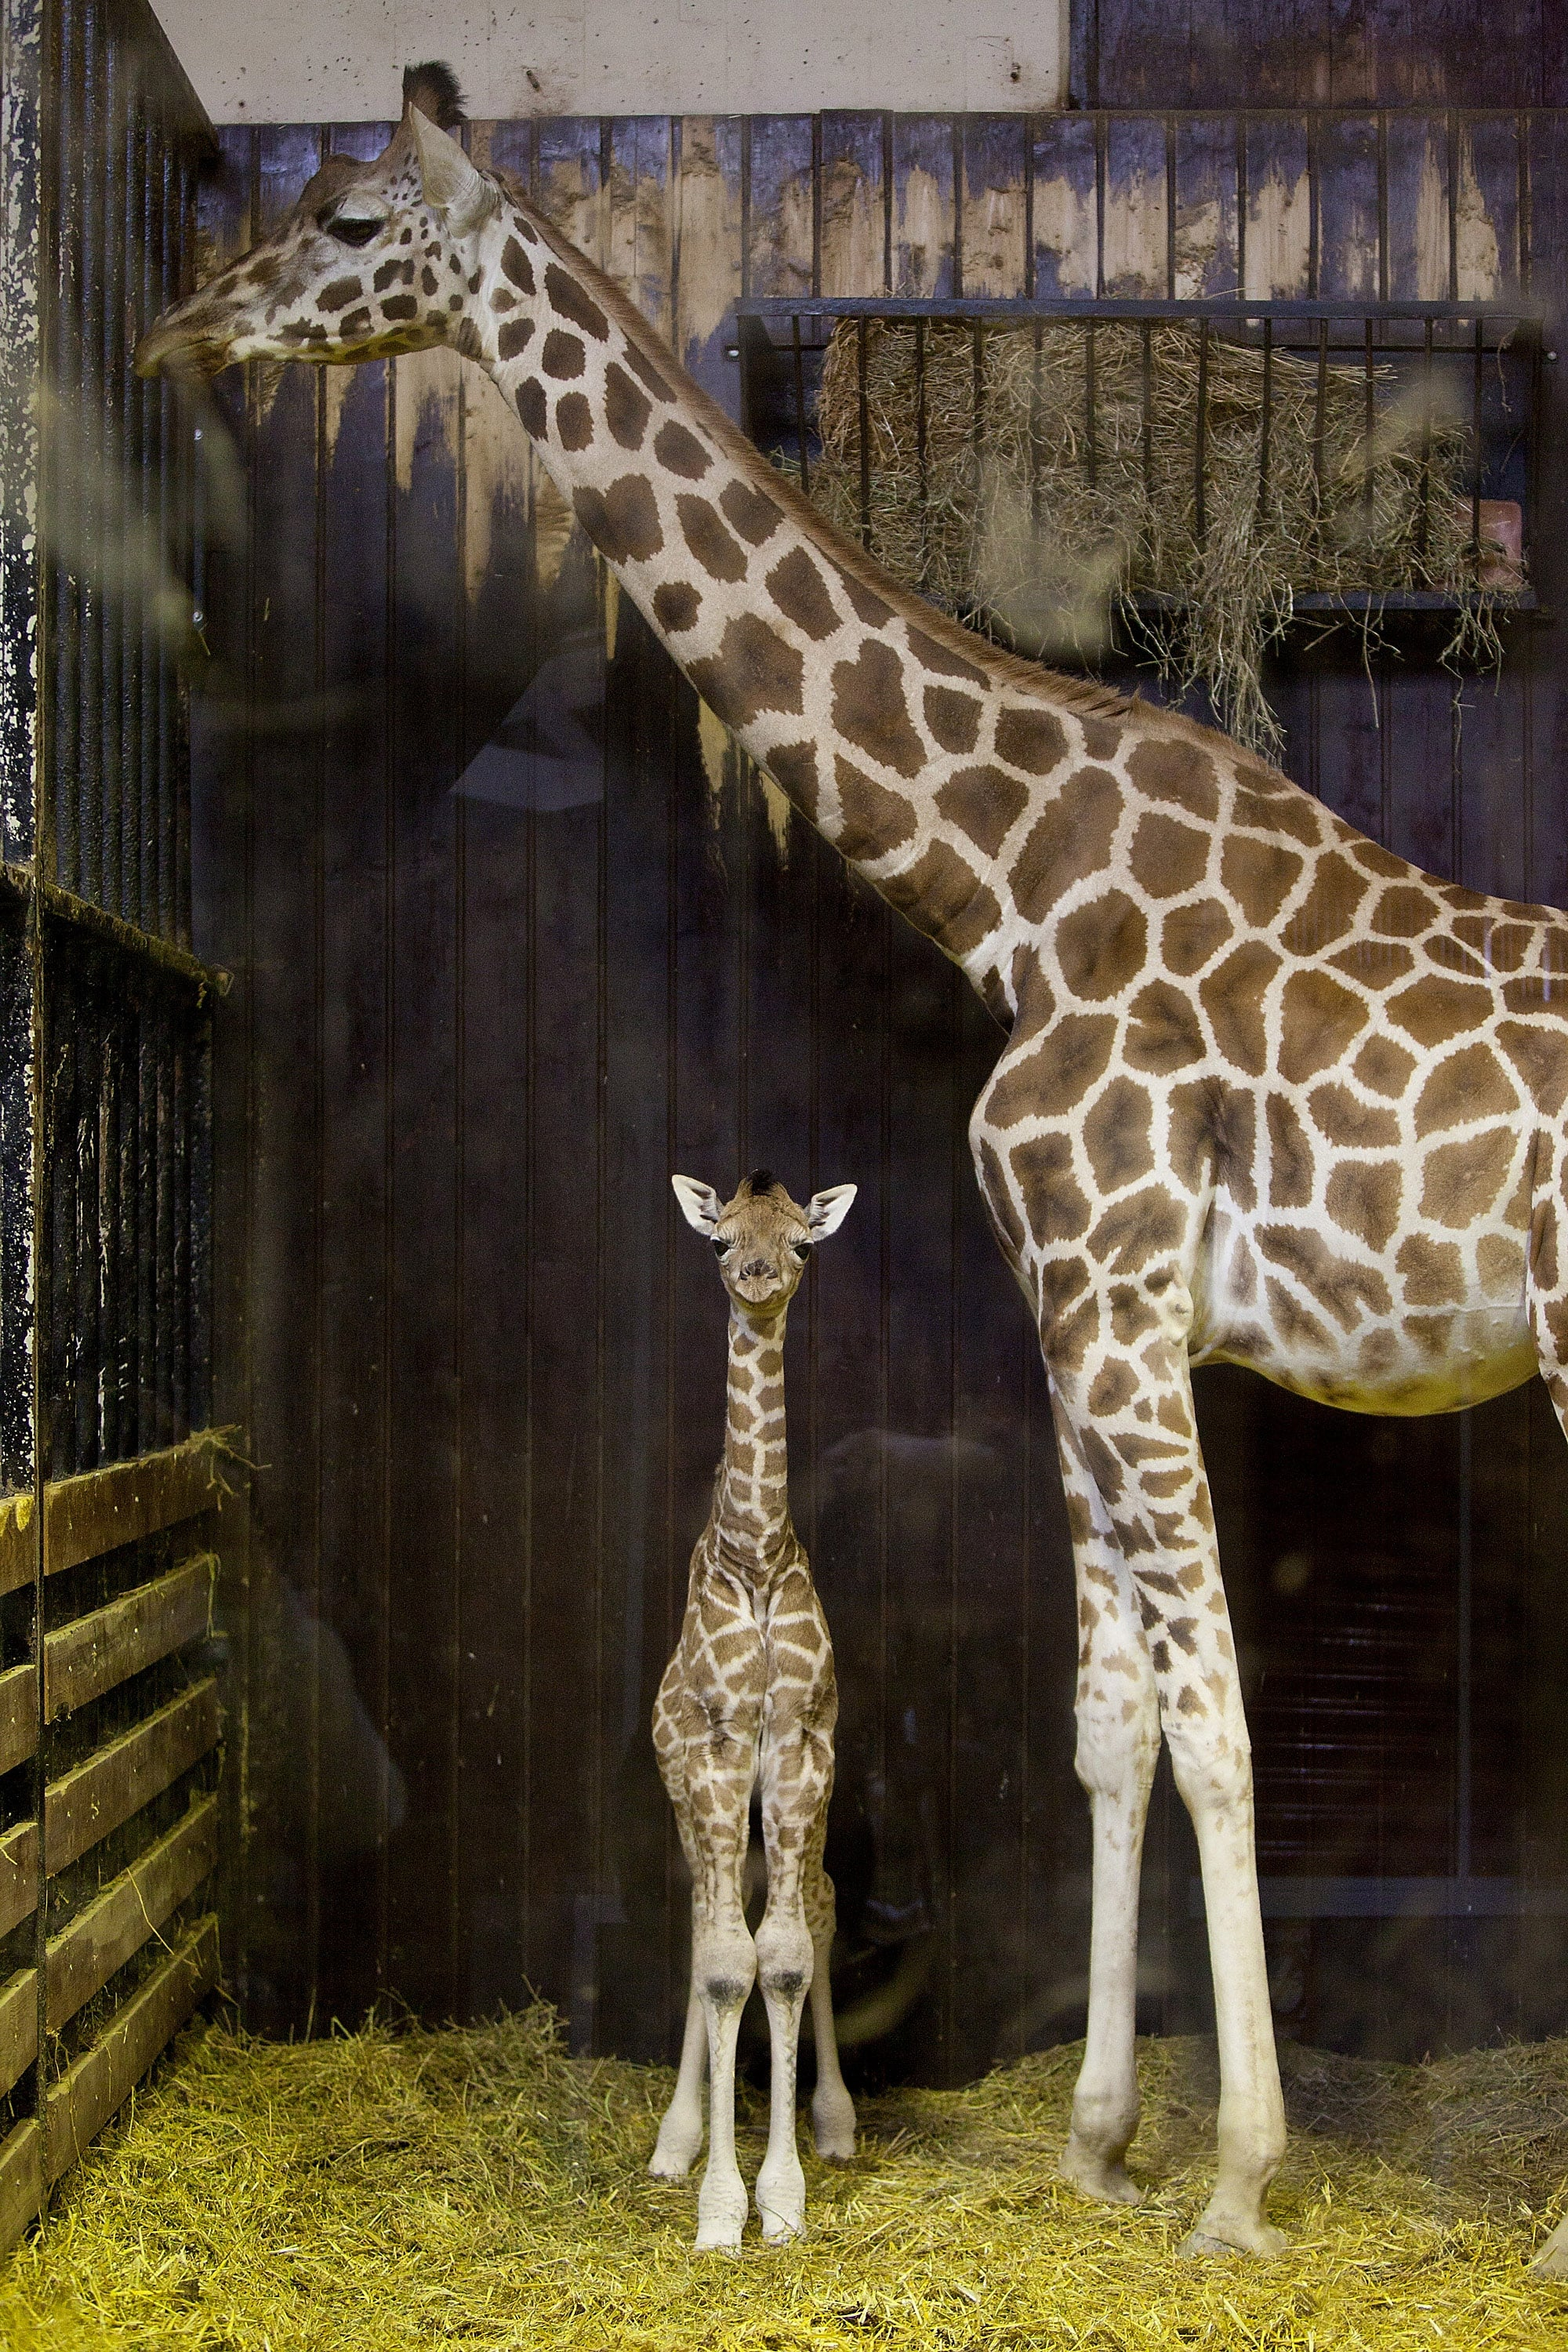 Whereas all giraffes have at least two horns atop their heads, Rothschild giraffes have five!